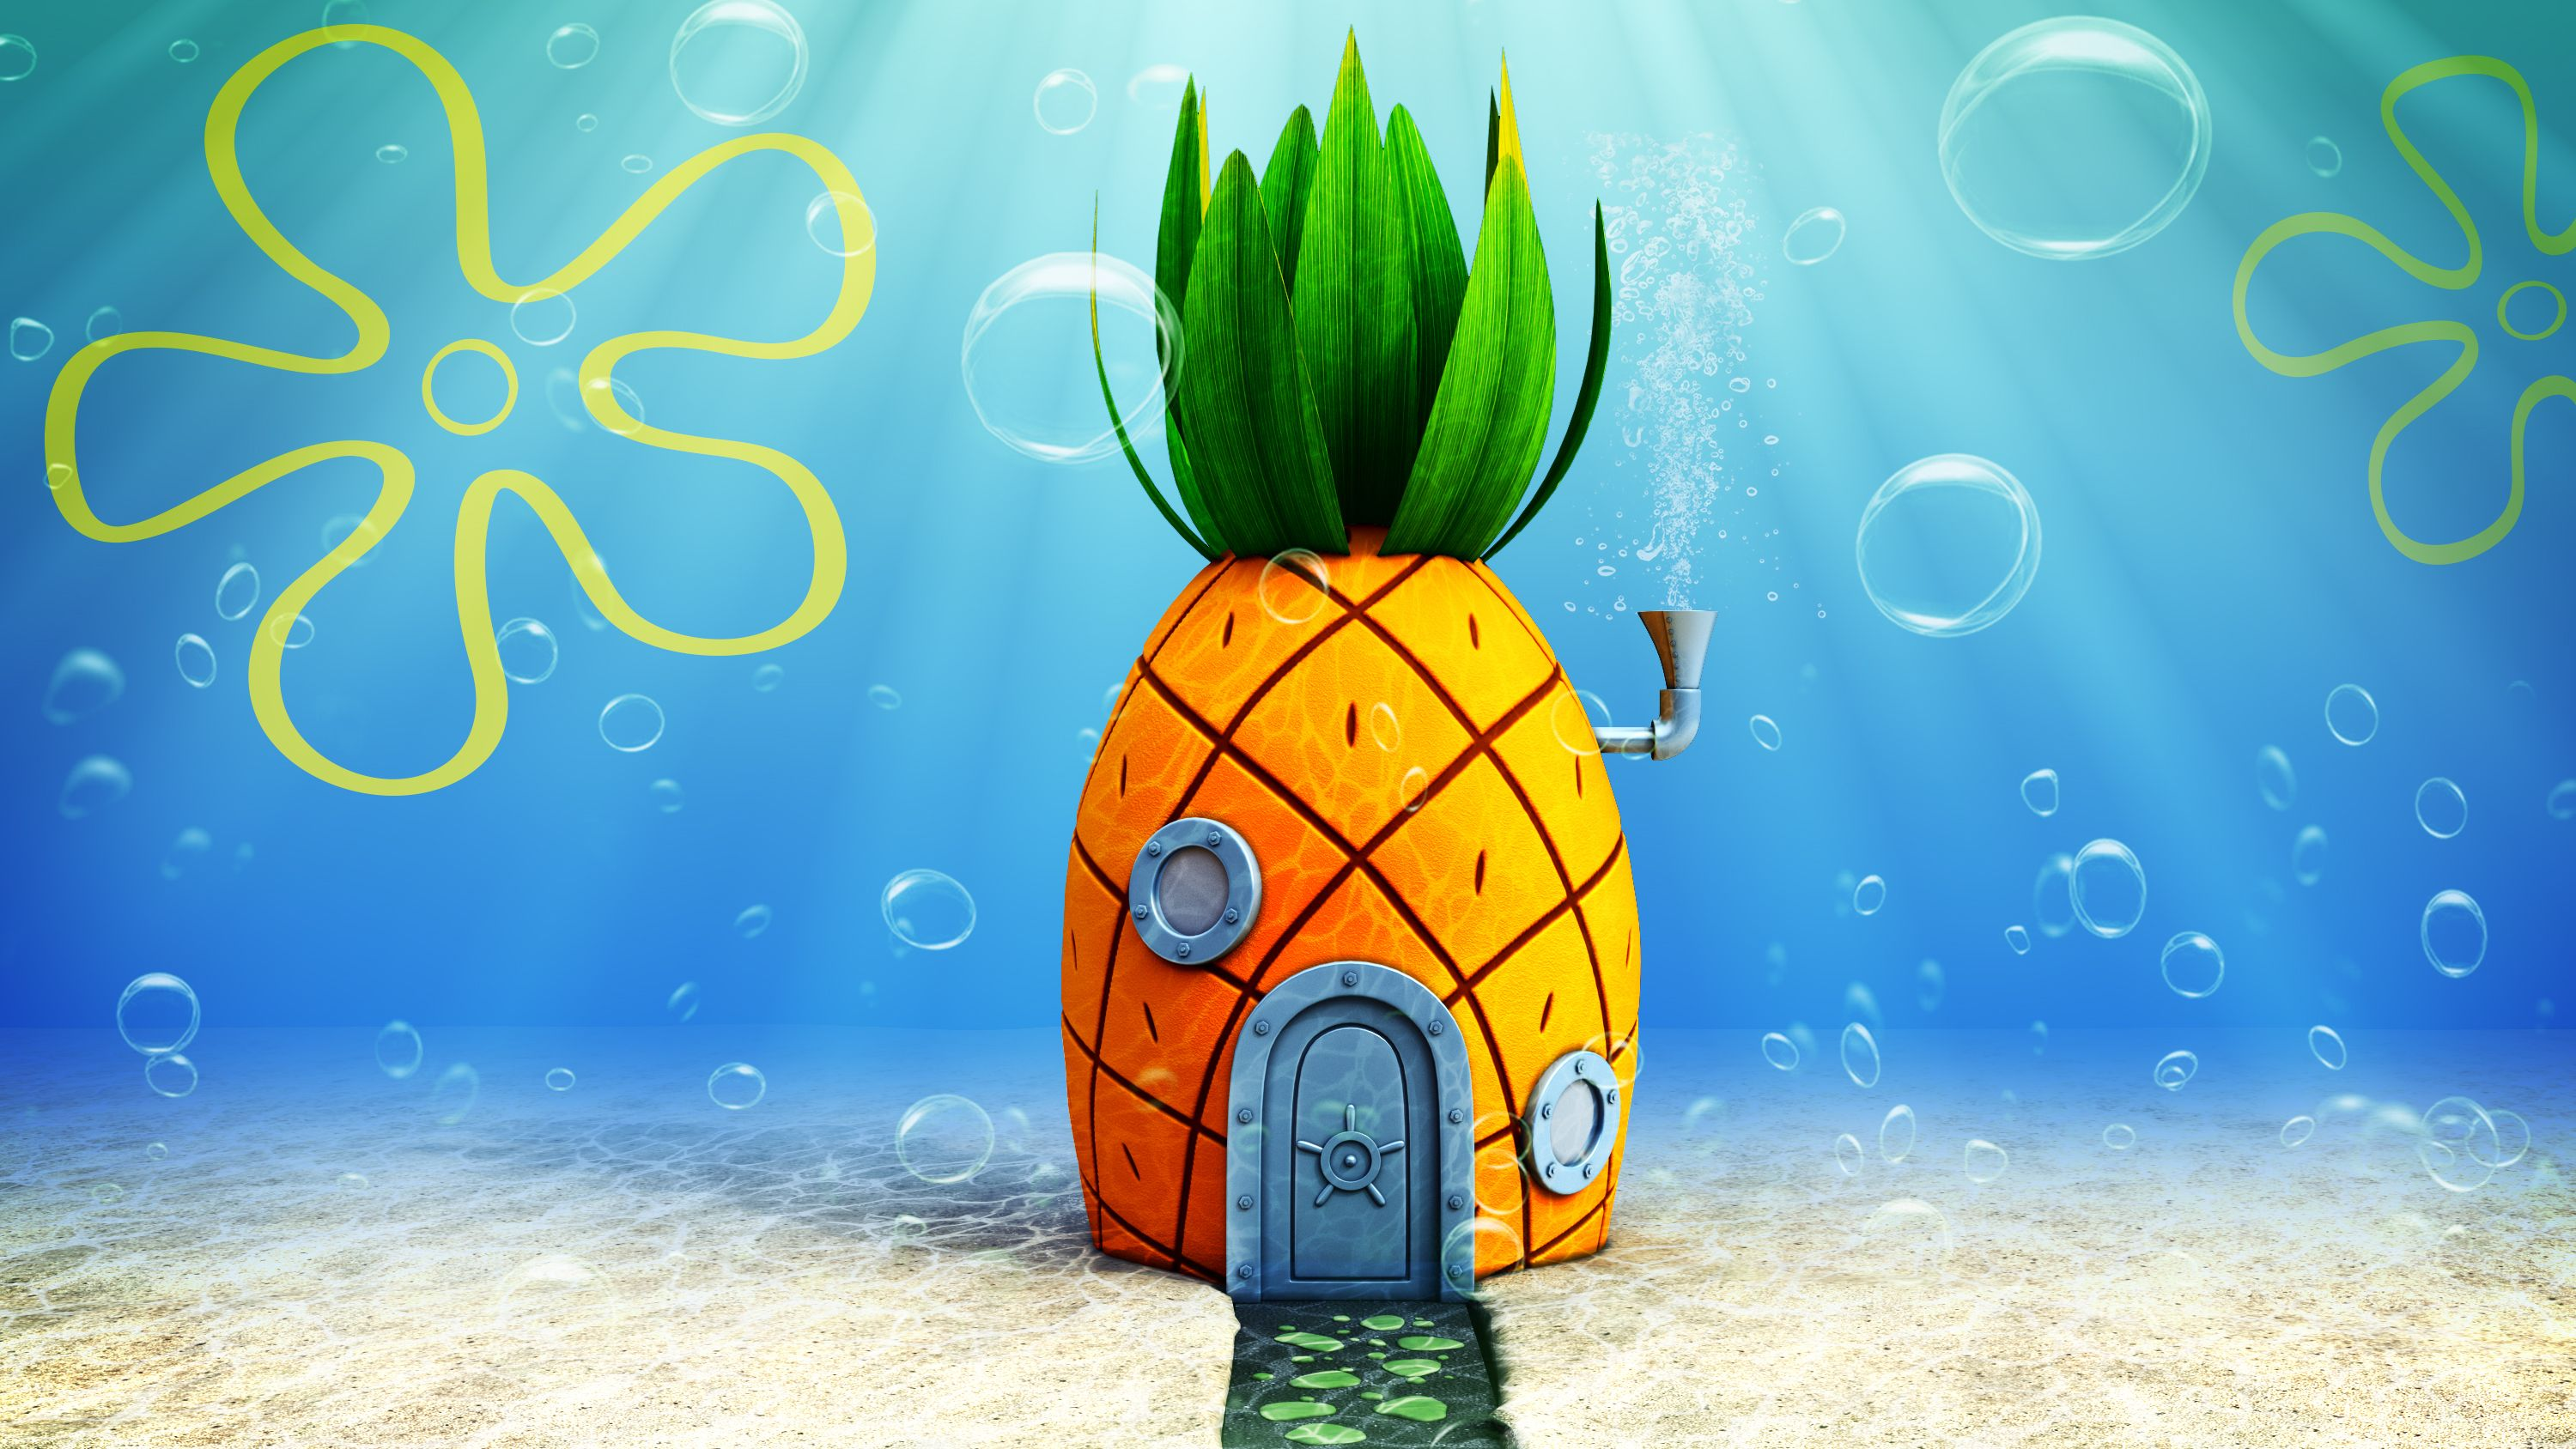 Check Out This Behance Project 3d House Of Spongebob